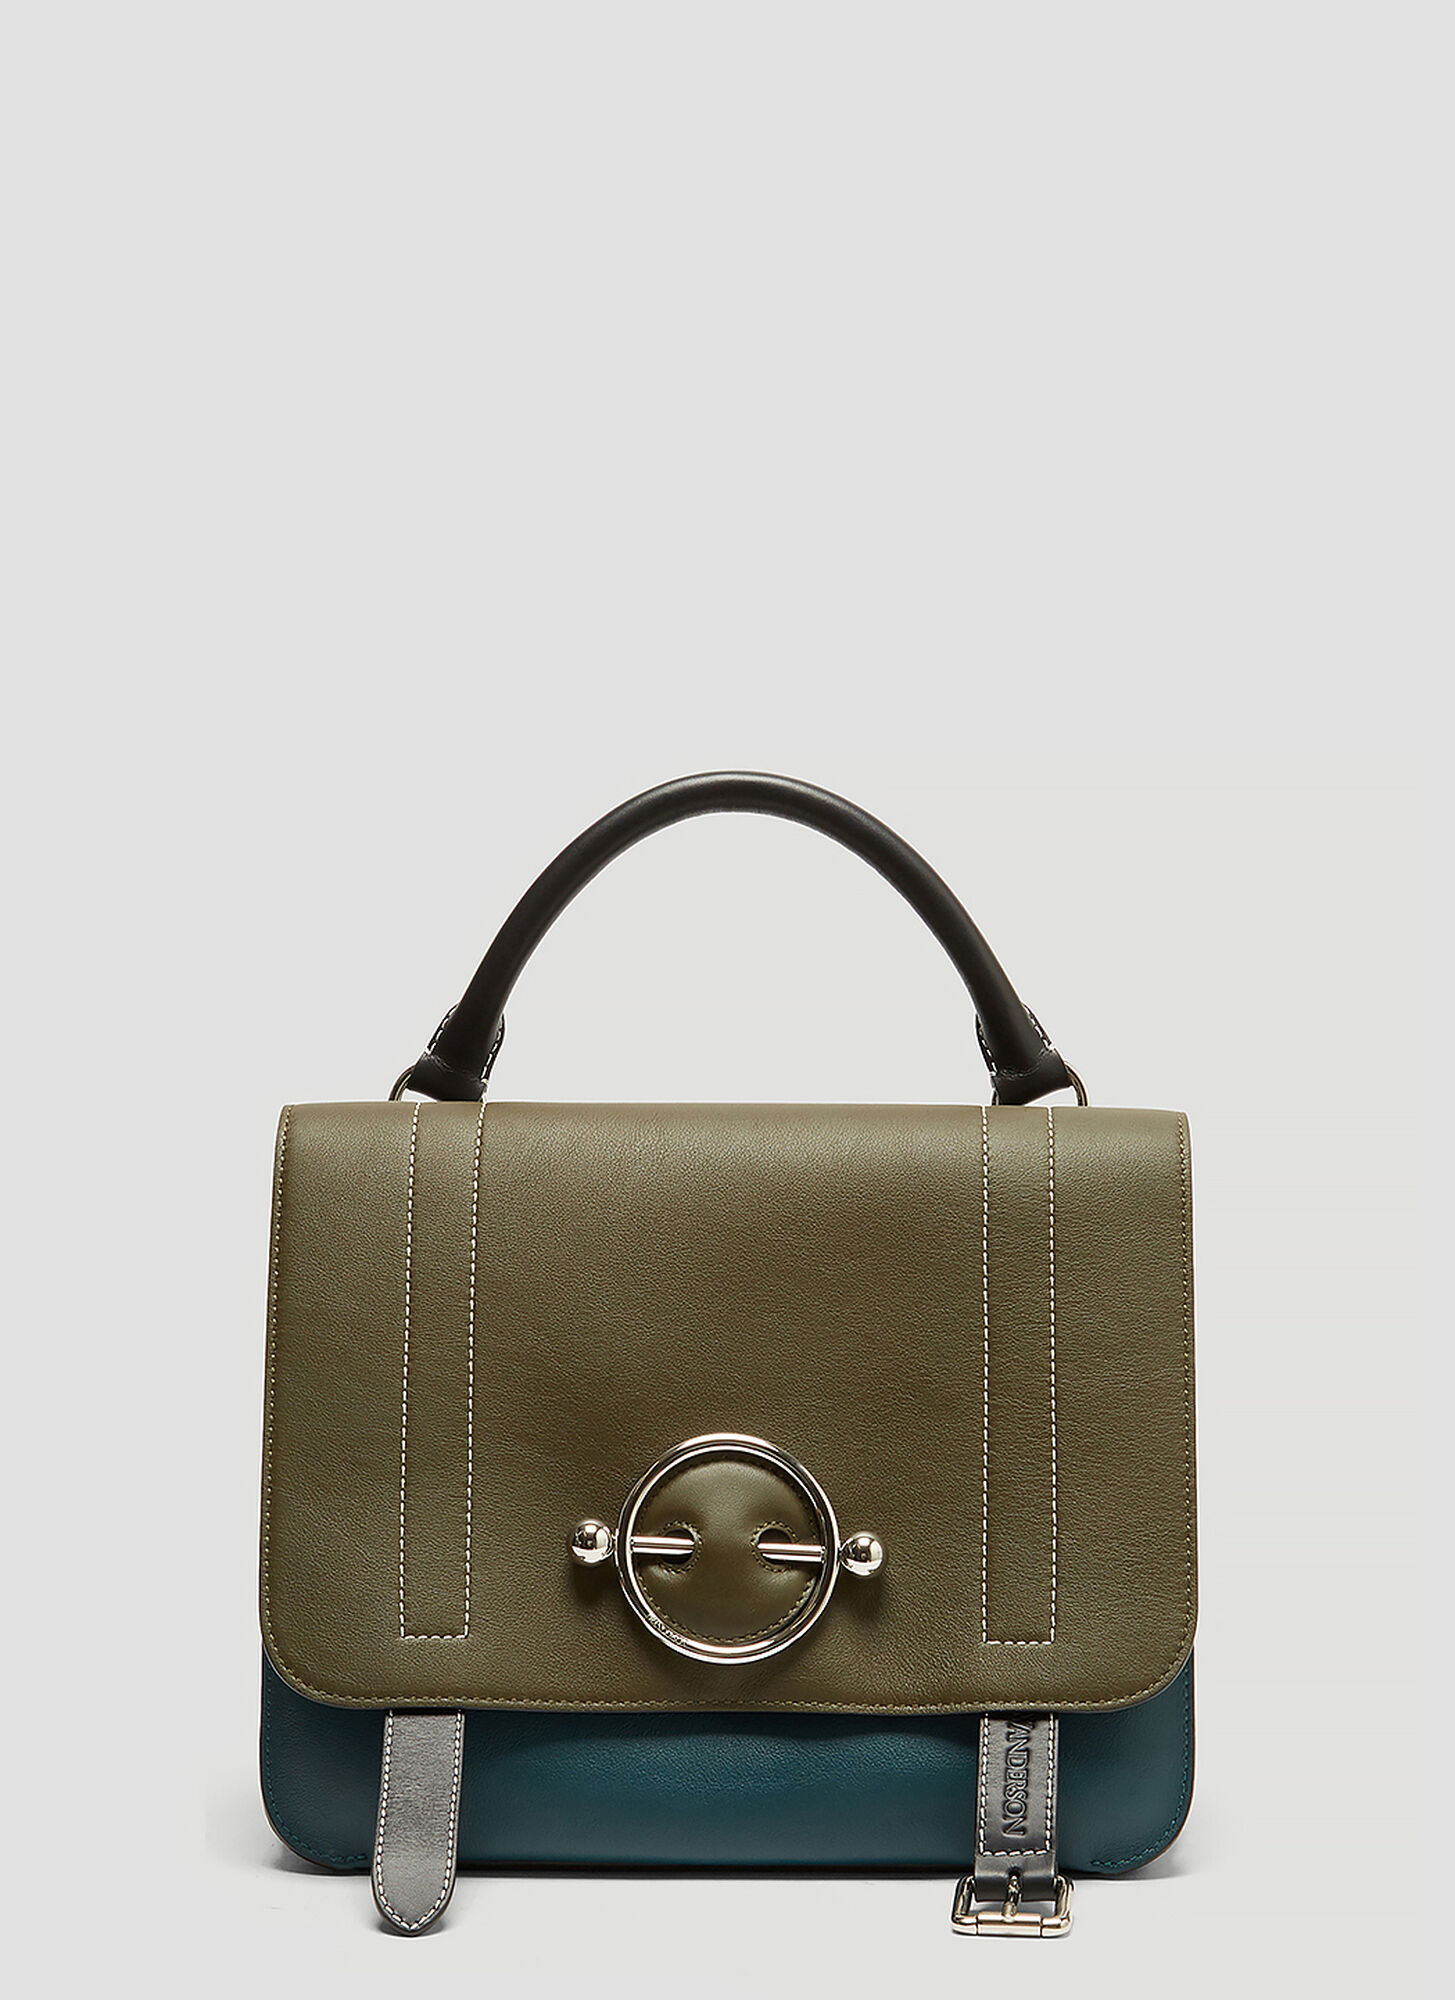 JW ANDERSON | JW Anderson Disc Satchel Handbag in Green size One Size | Goxip